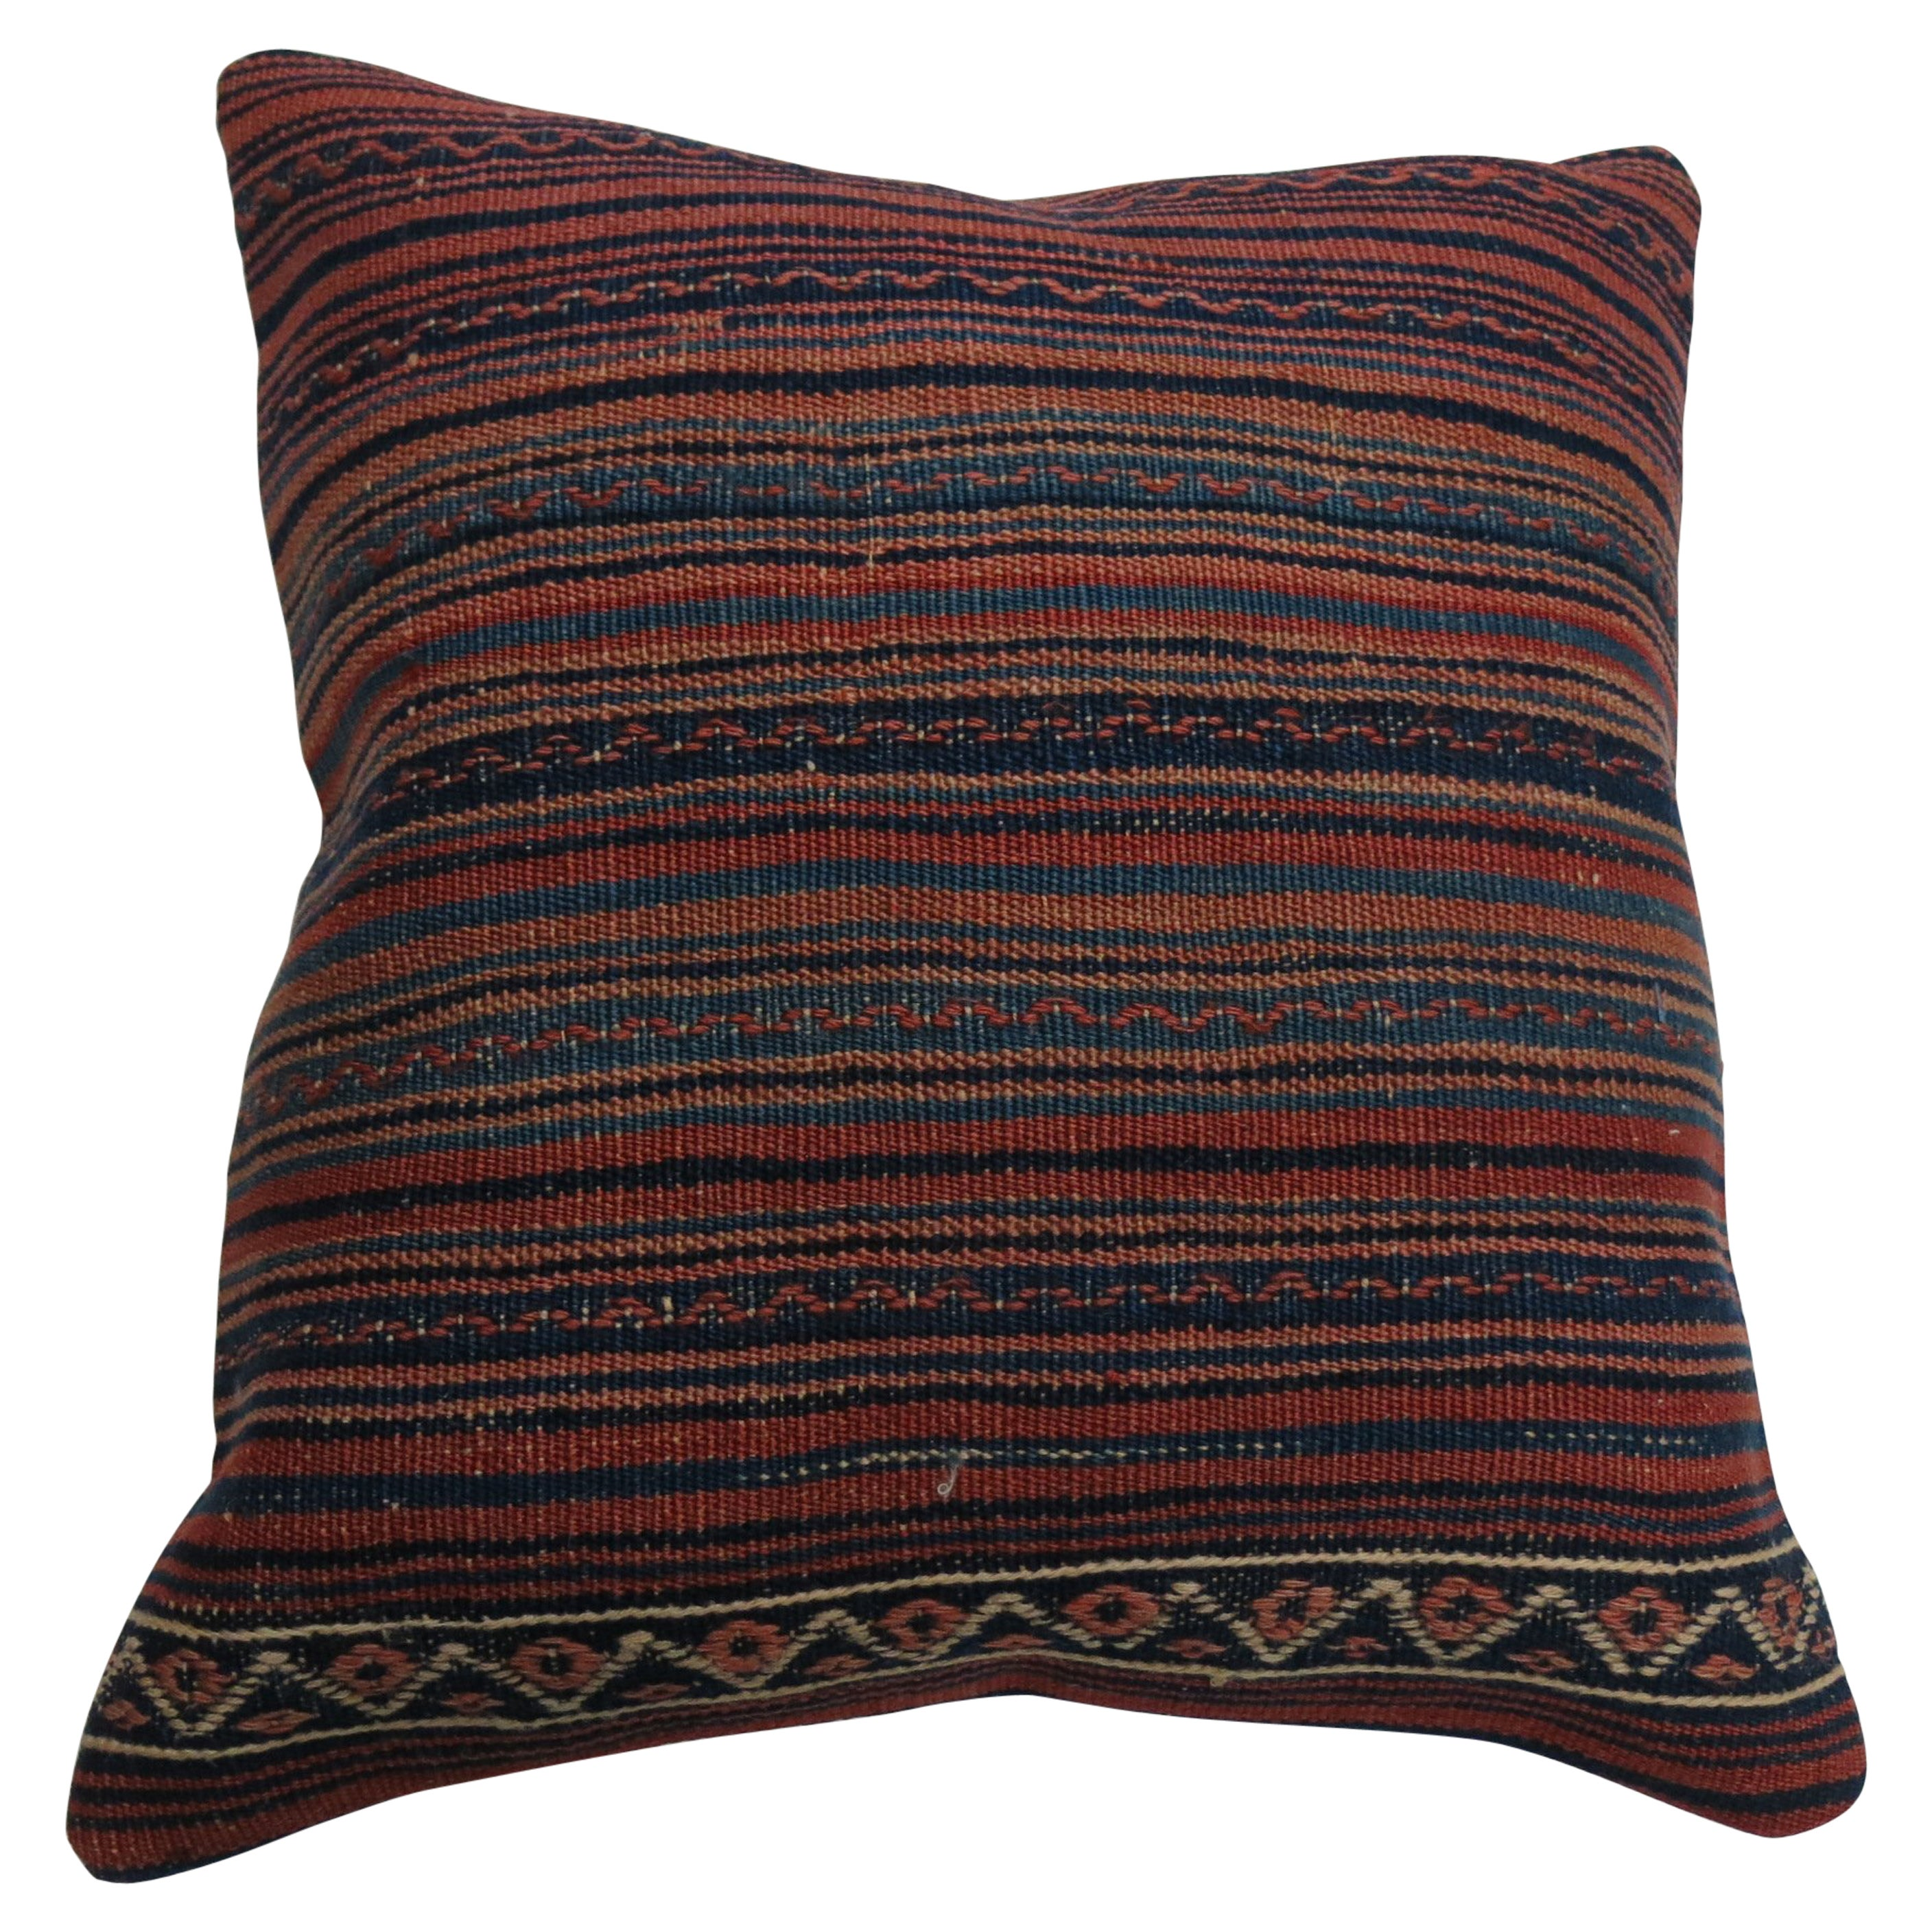 Large Striped Vintage Kilim Pillow